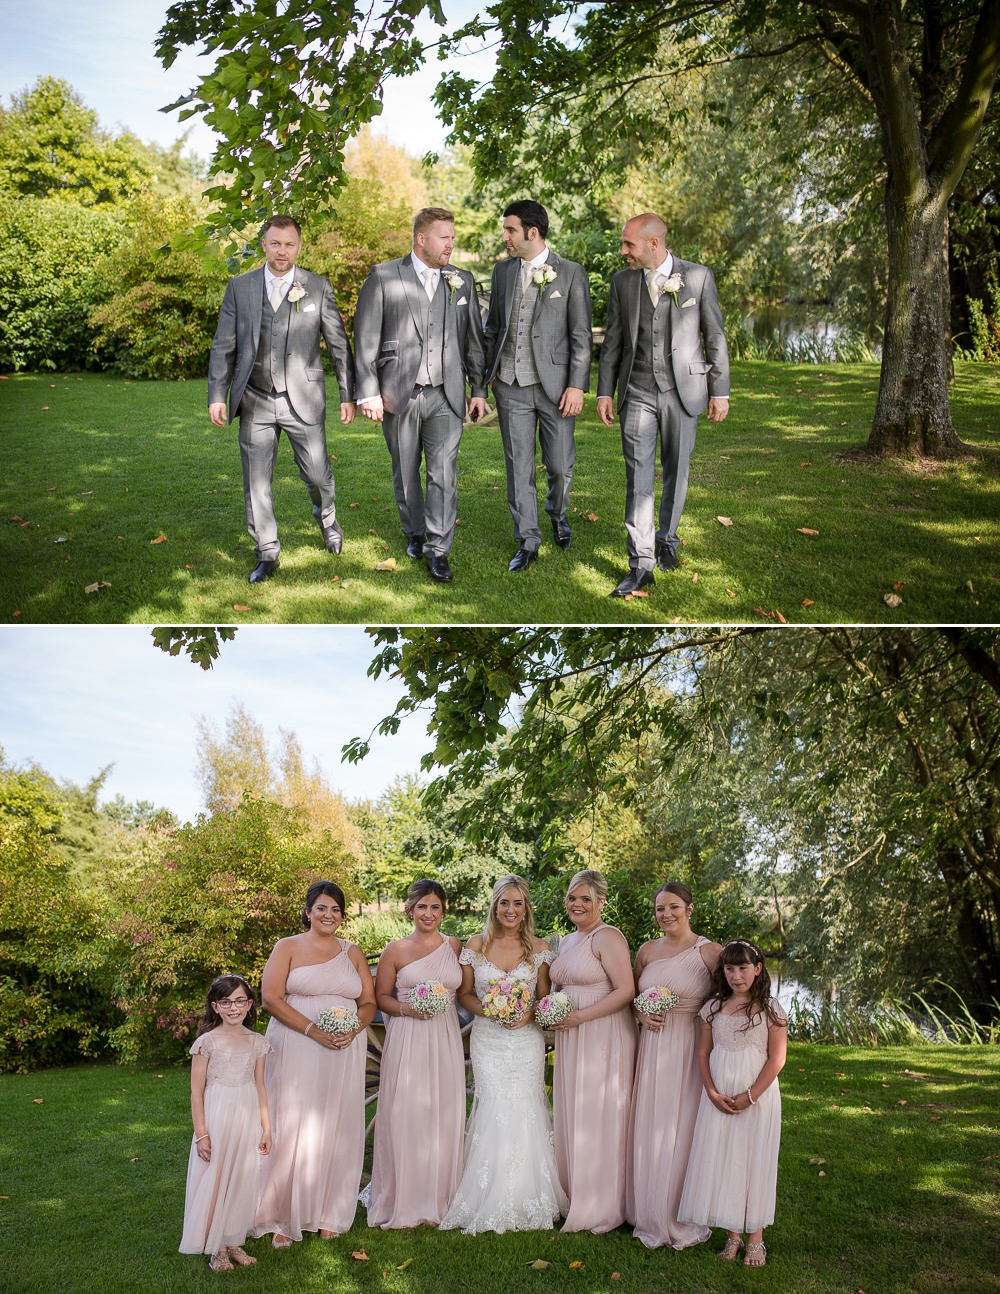 Two shots showing the groom party and the next shot is the bridal part at The Granary Barns Wedding